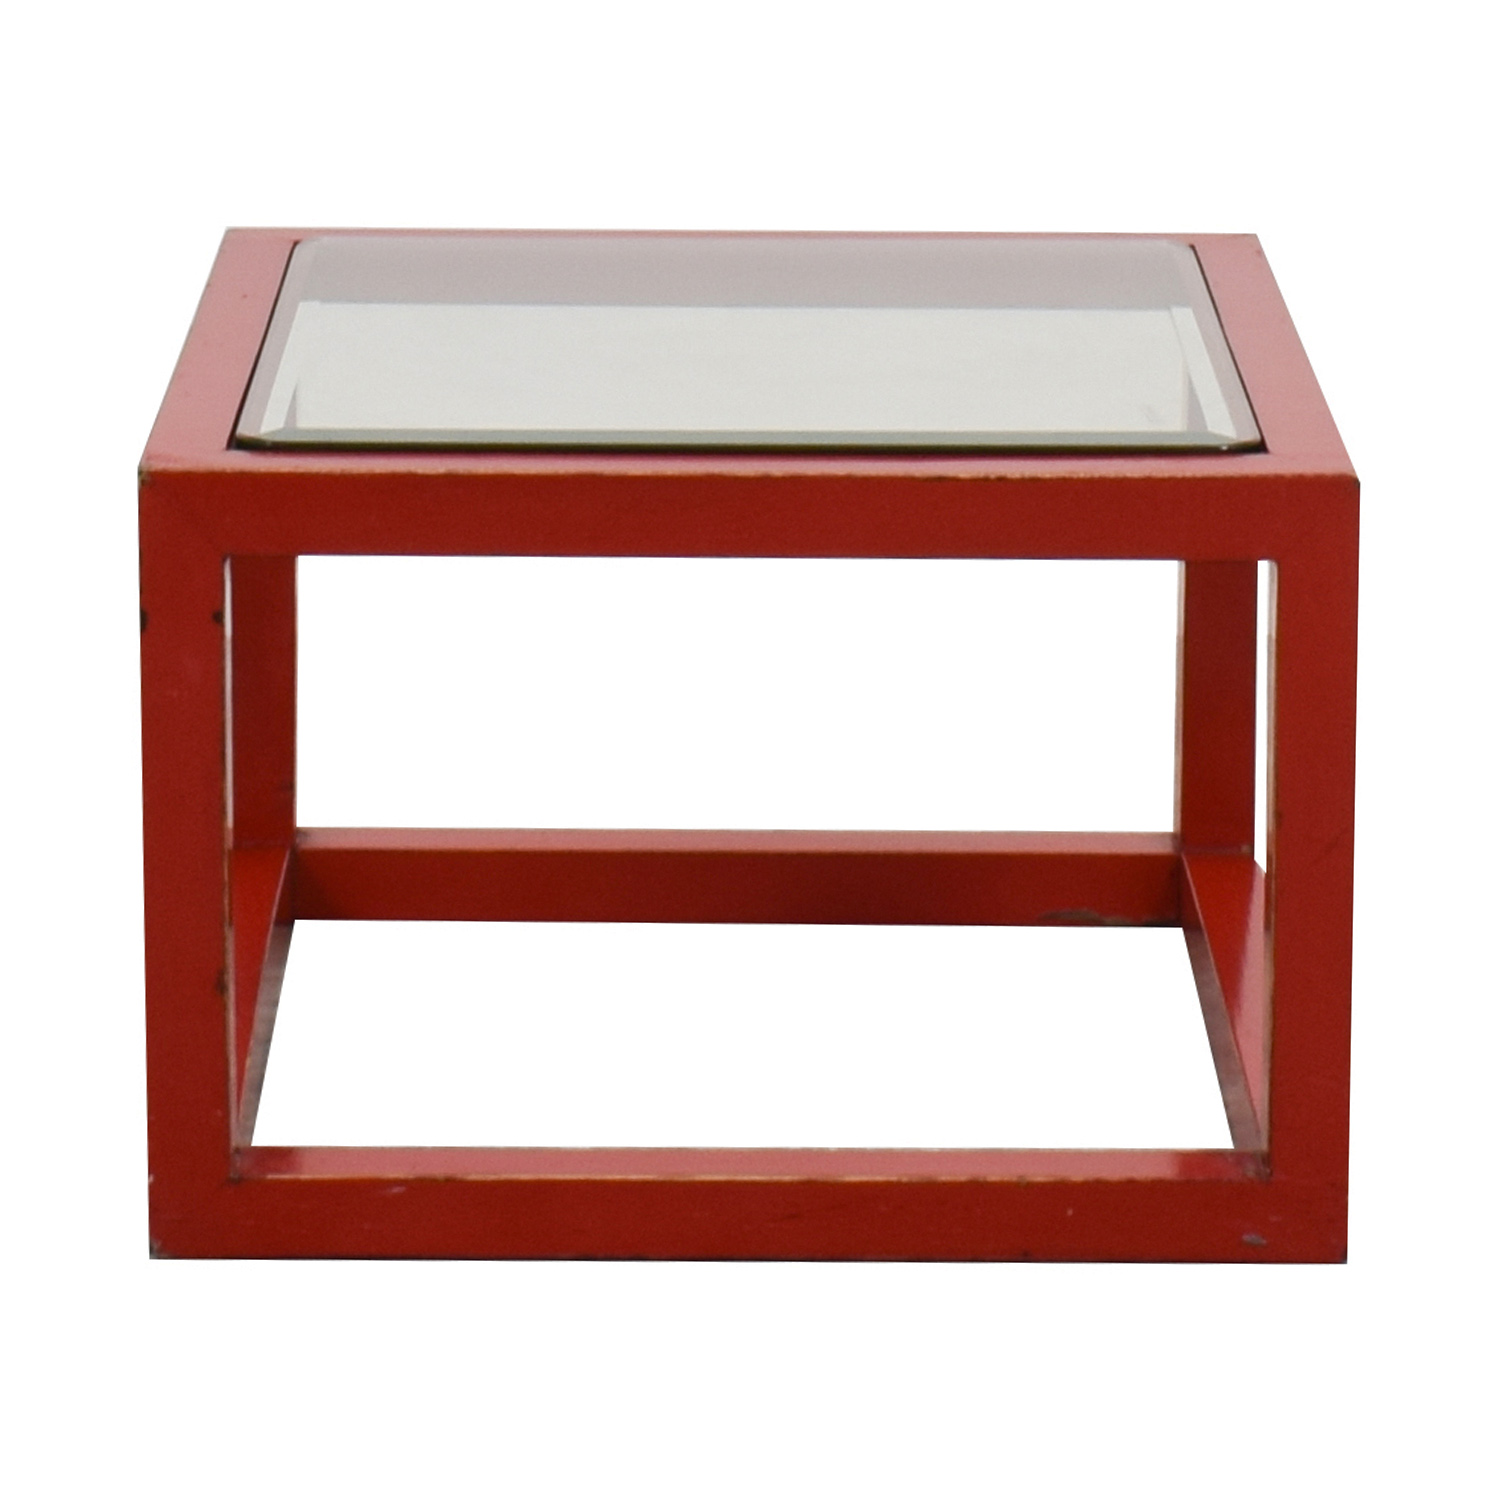 6560ea191d9c 90% OFF - Crate   Barrel Crate   Barrel Modern Glass Top Red Coffee ...